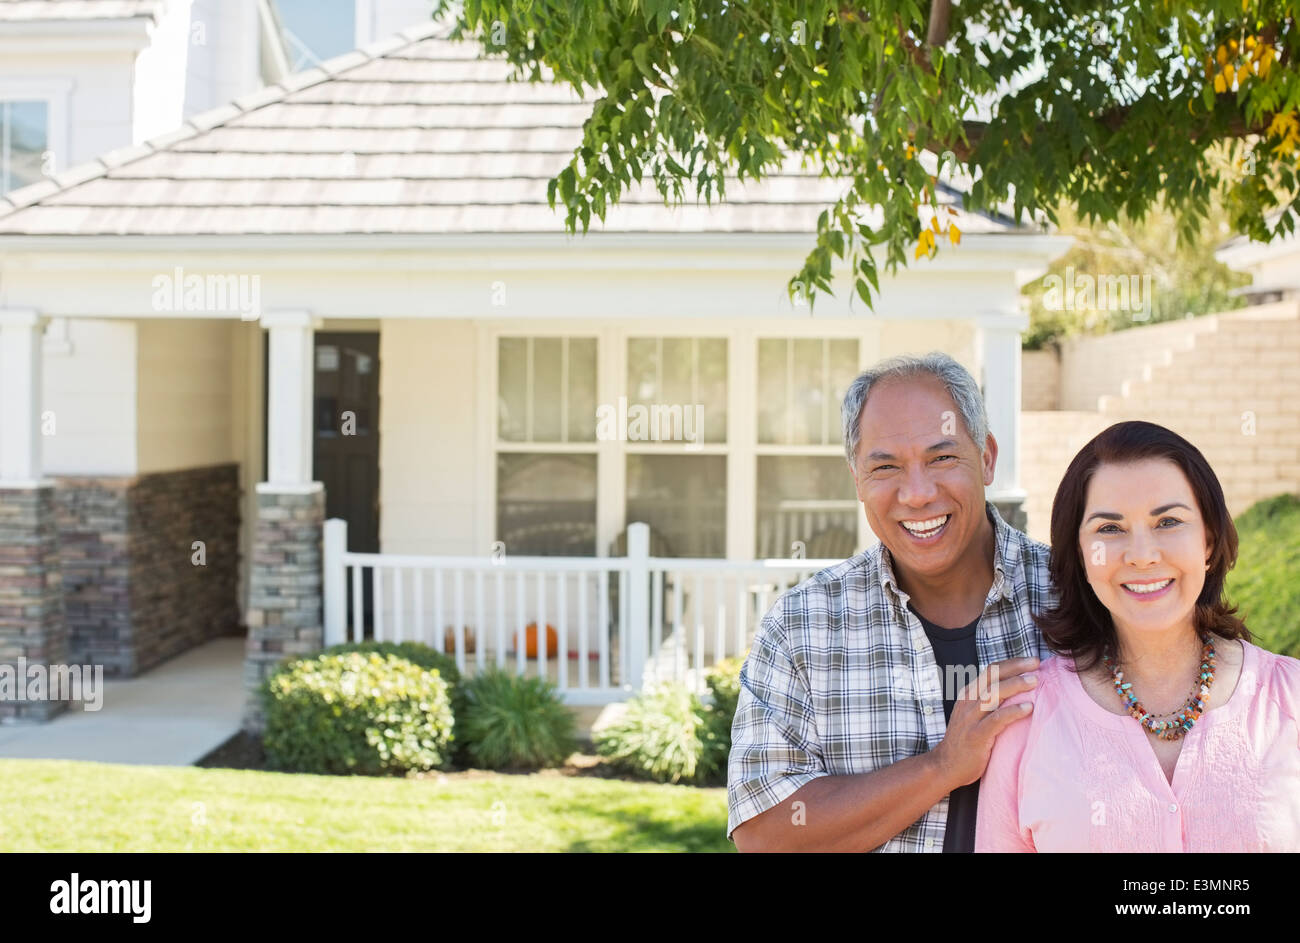 Portrait of smiling couple outside house - Stock Image